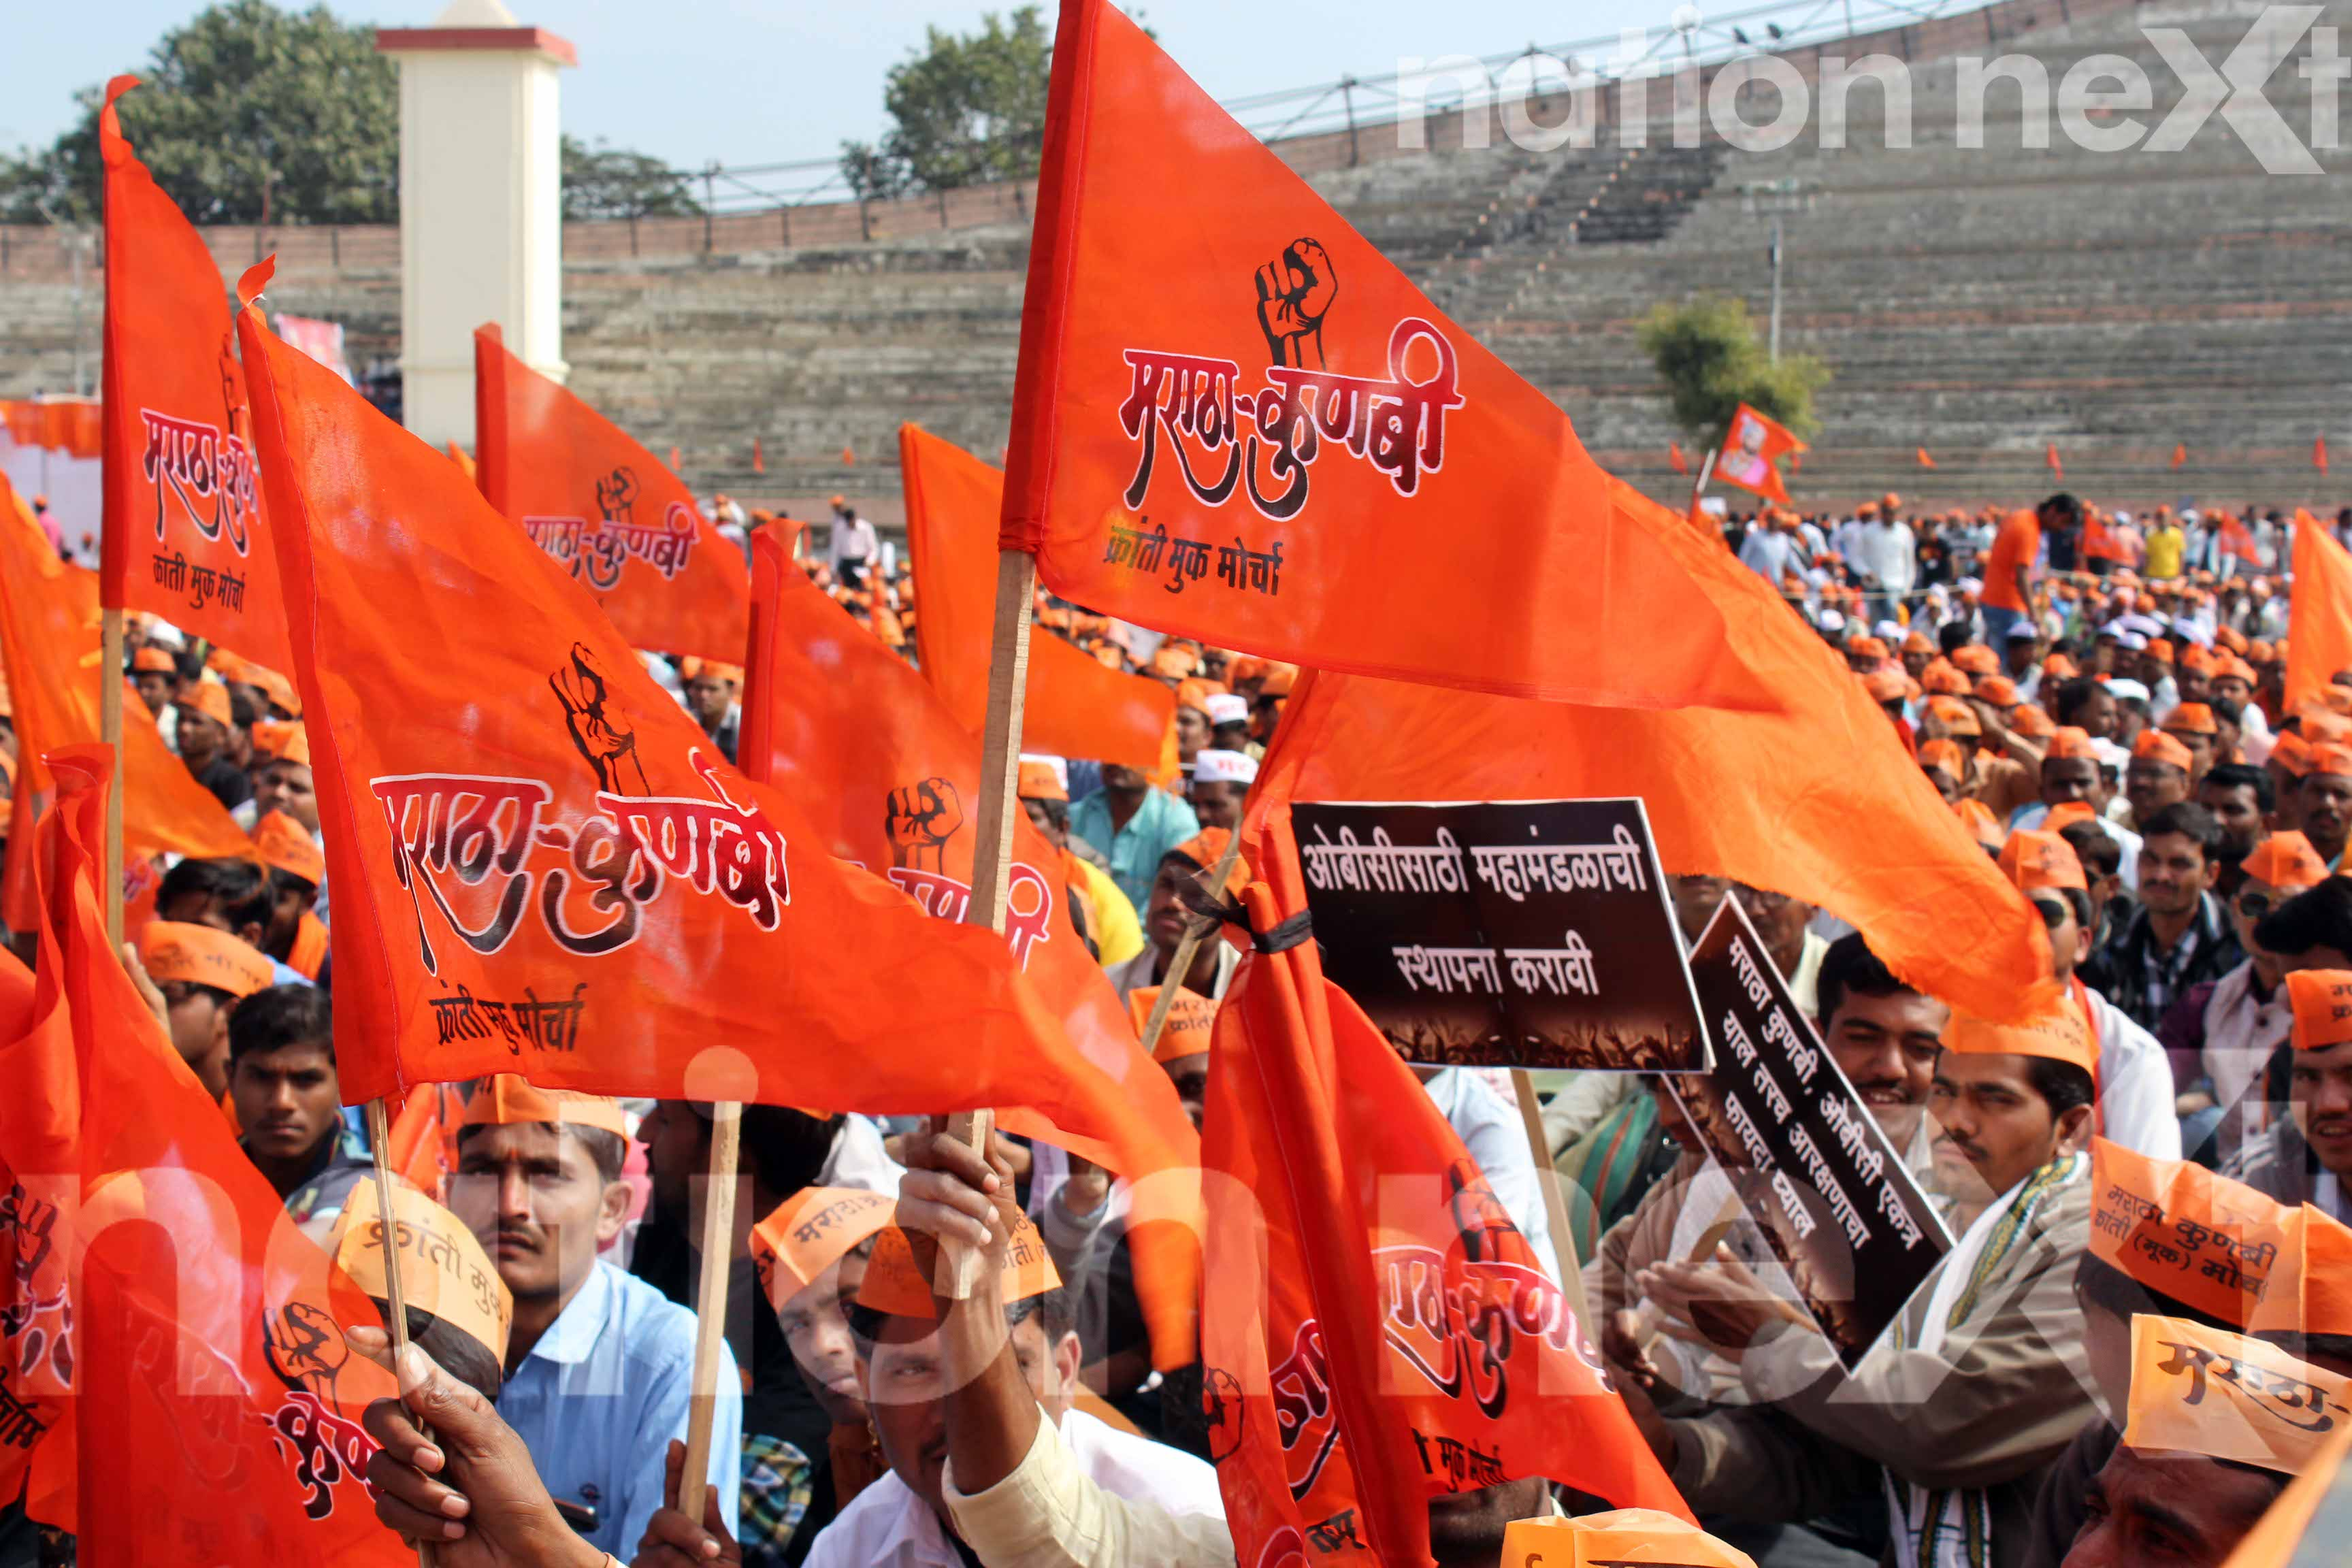 The Maratha Kranti Muk Morcha organised by Akhil Bharat Maratha Mahasangh in Nagpur on December 14, 2016 saw participation from leaders across party lines.